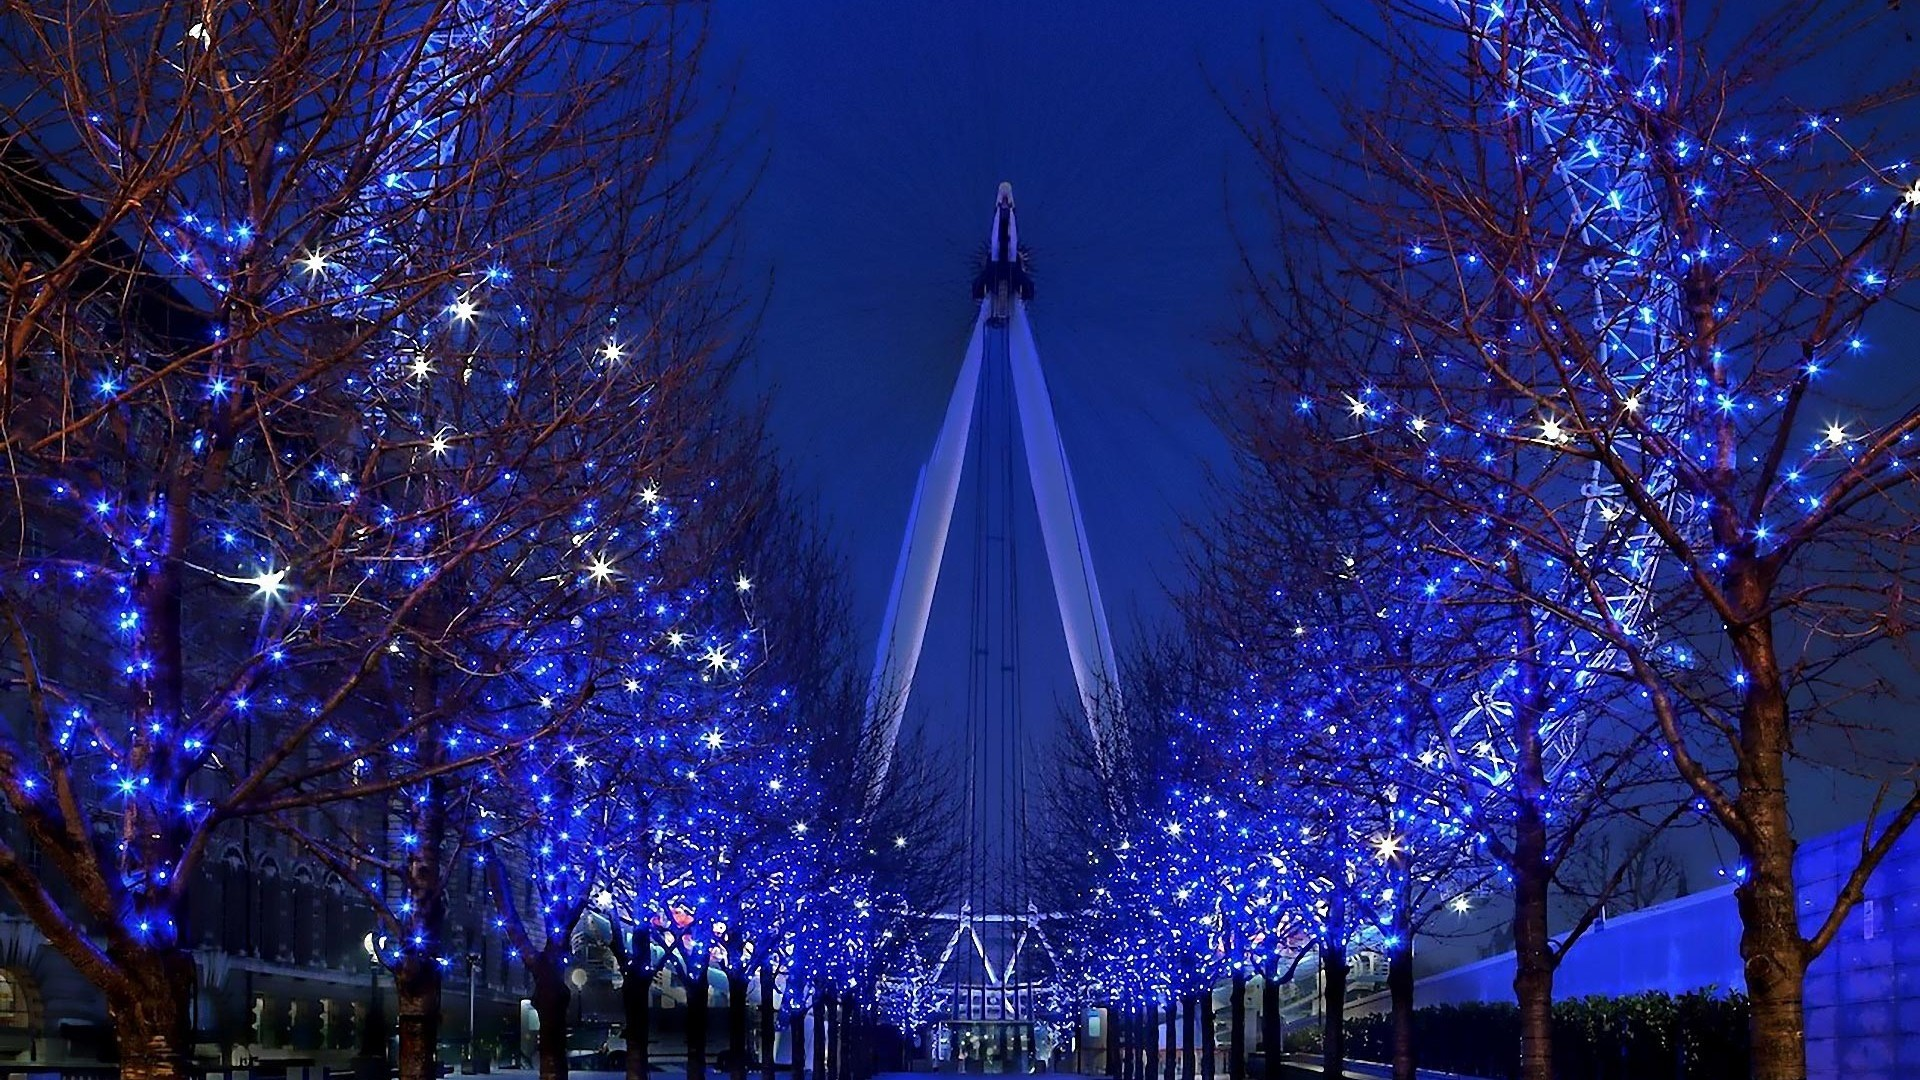 47 most beautiful london wallpapers in hd for free download - Light night wallpaper ...